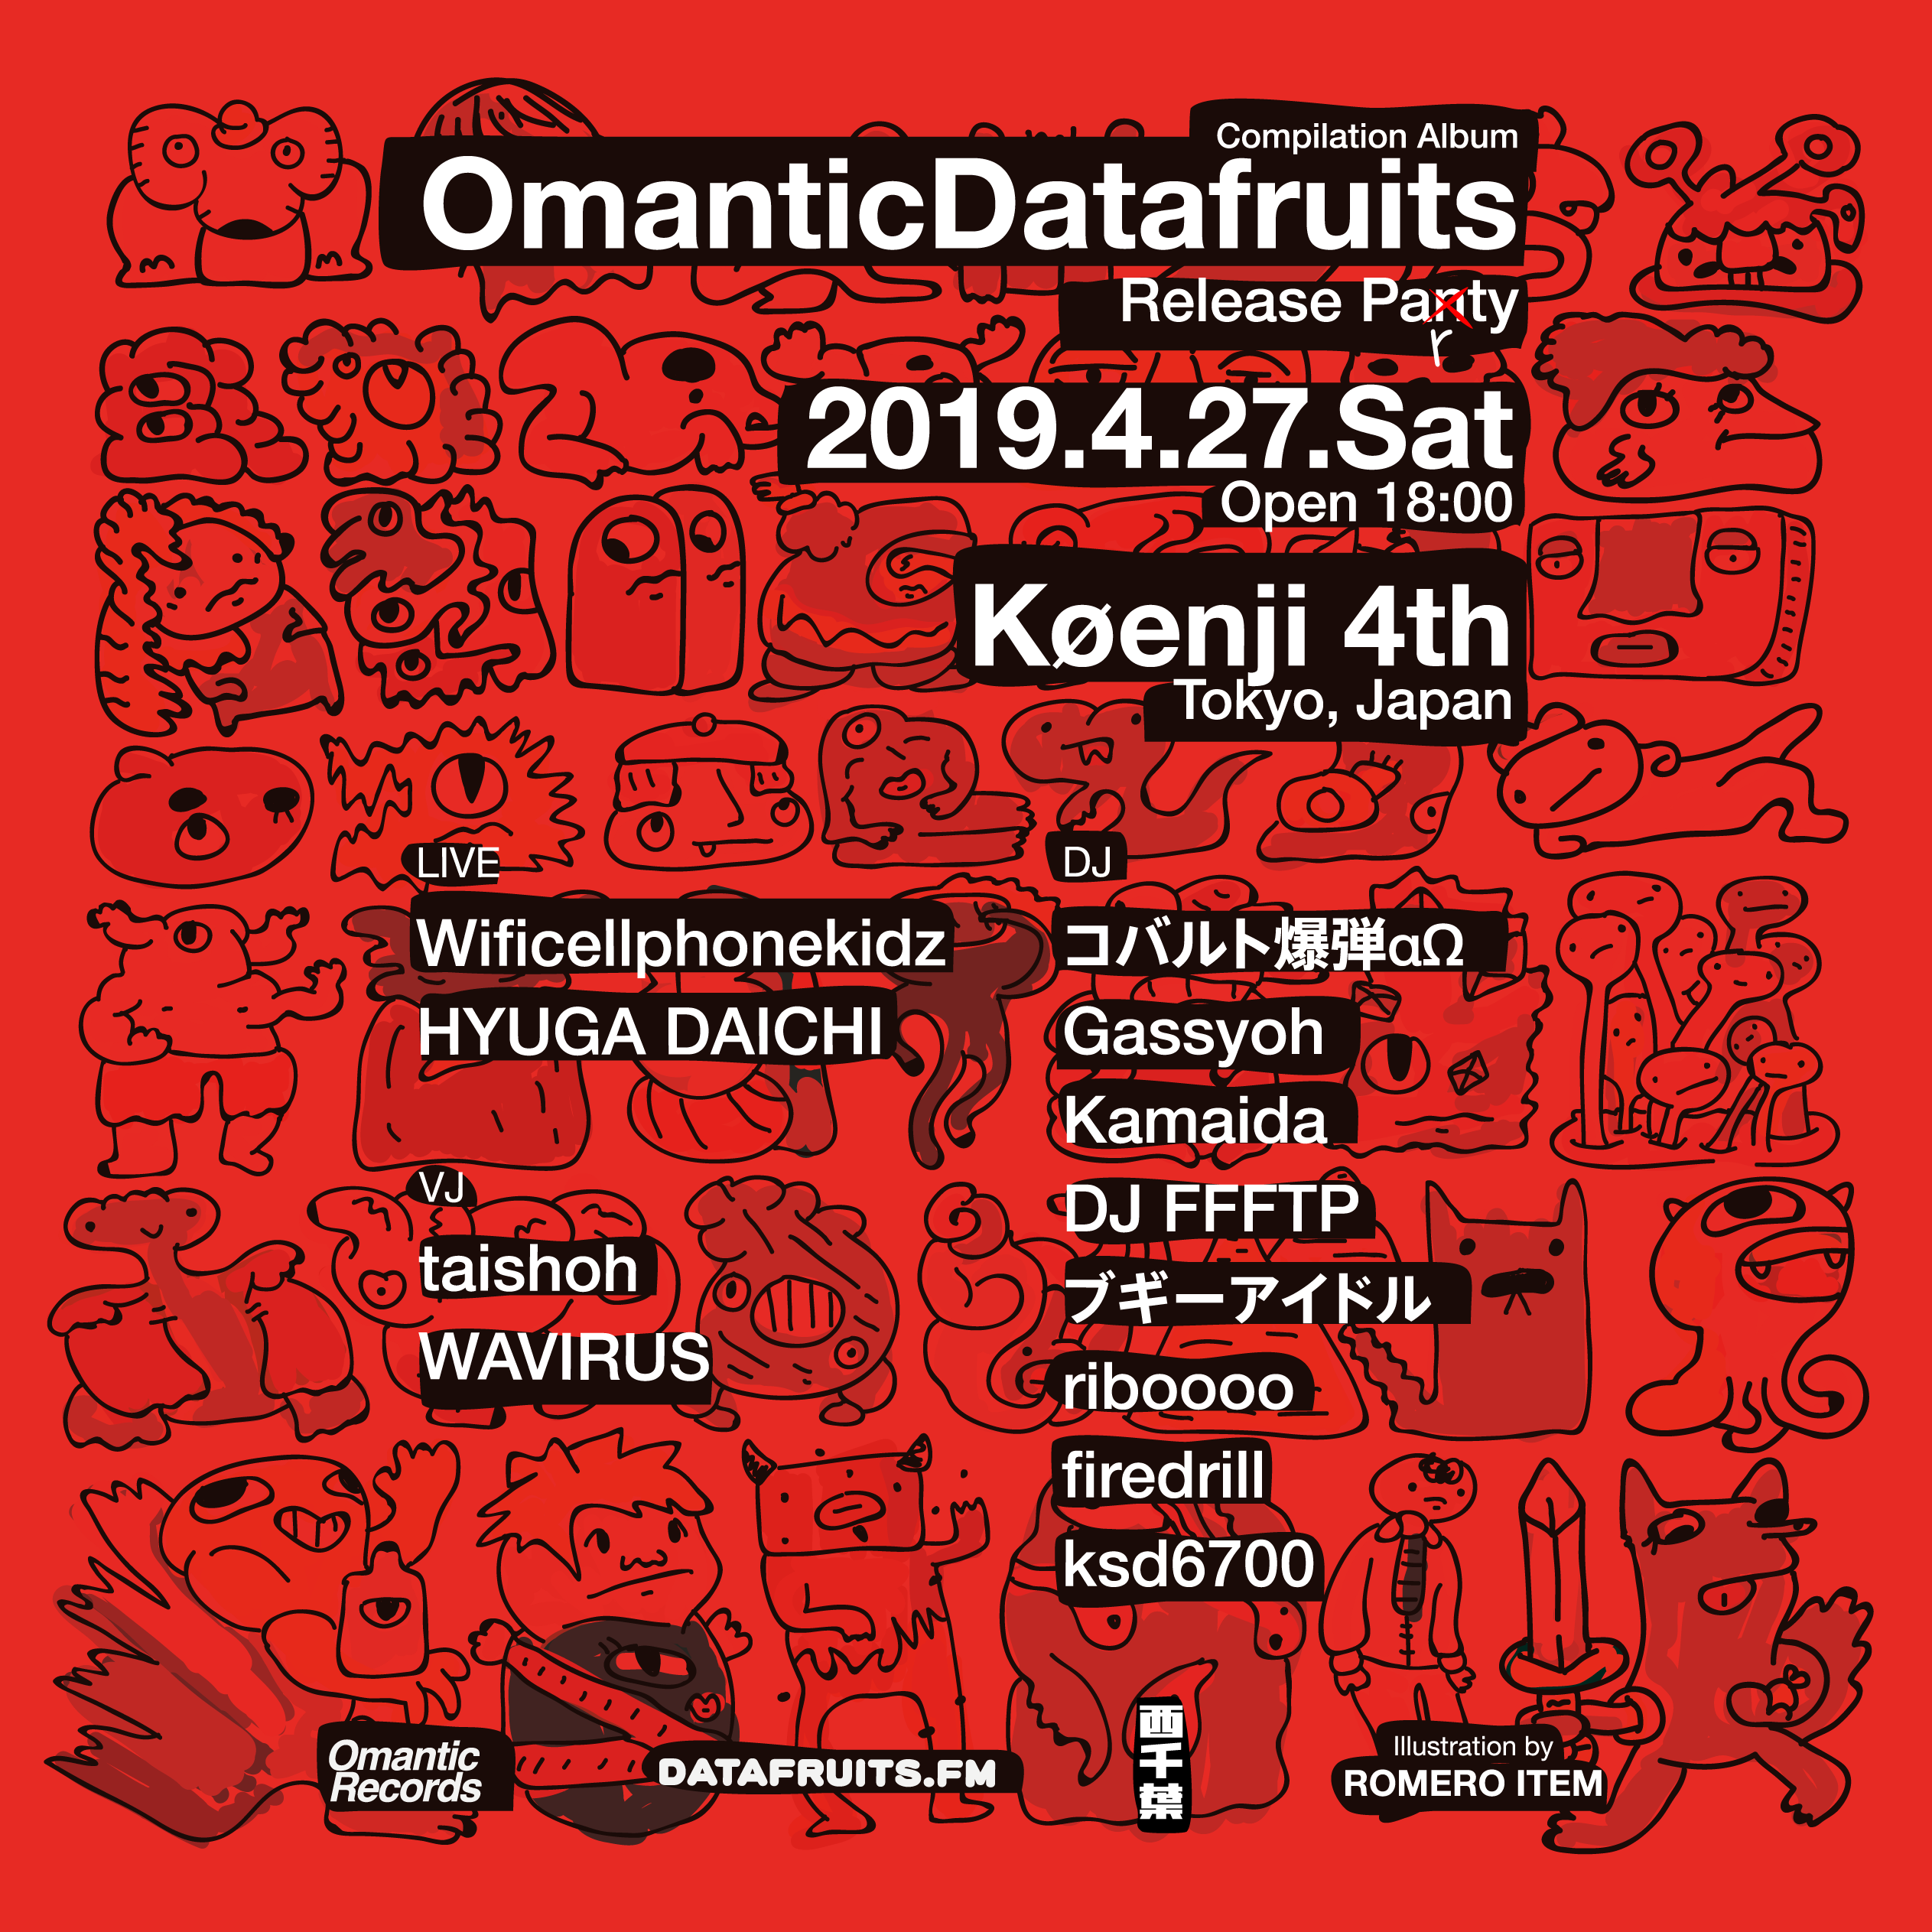 OmanticDatafruits Release Party